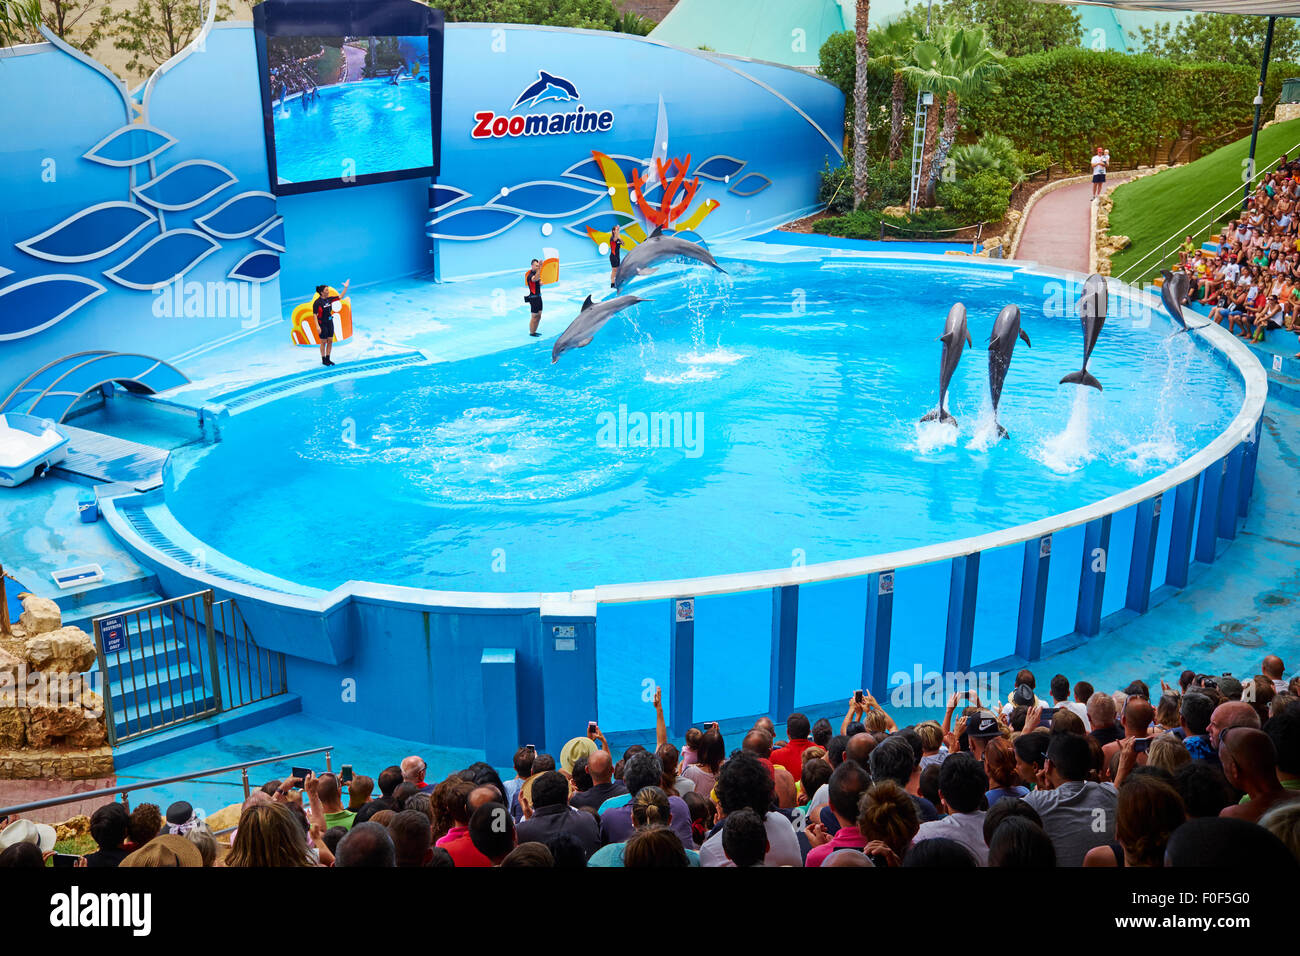 Dolphin Show At The Zoomarine Theme Park Guia Algarve Portugal - Stock Image